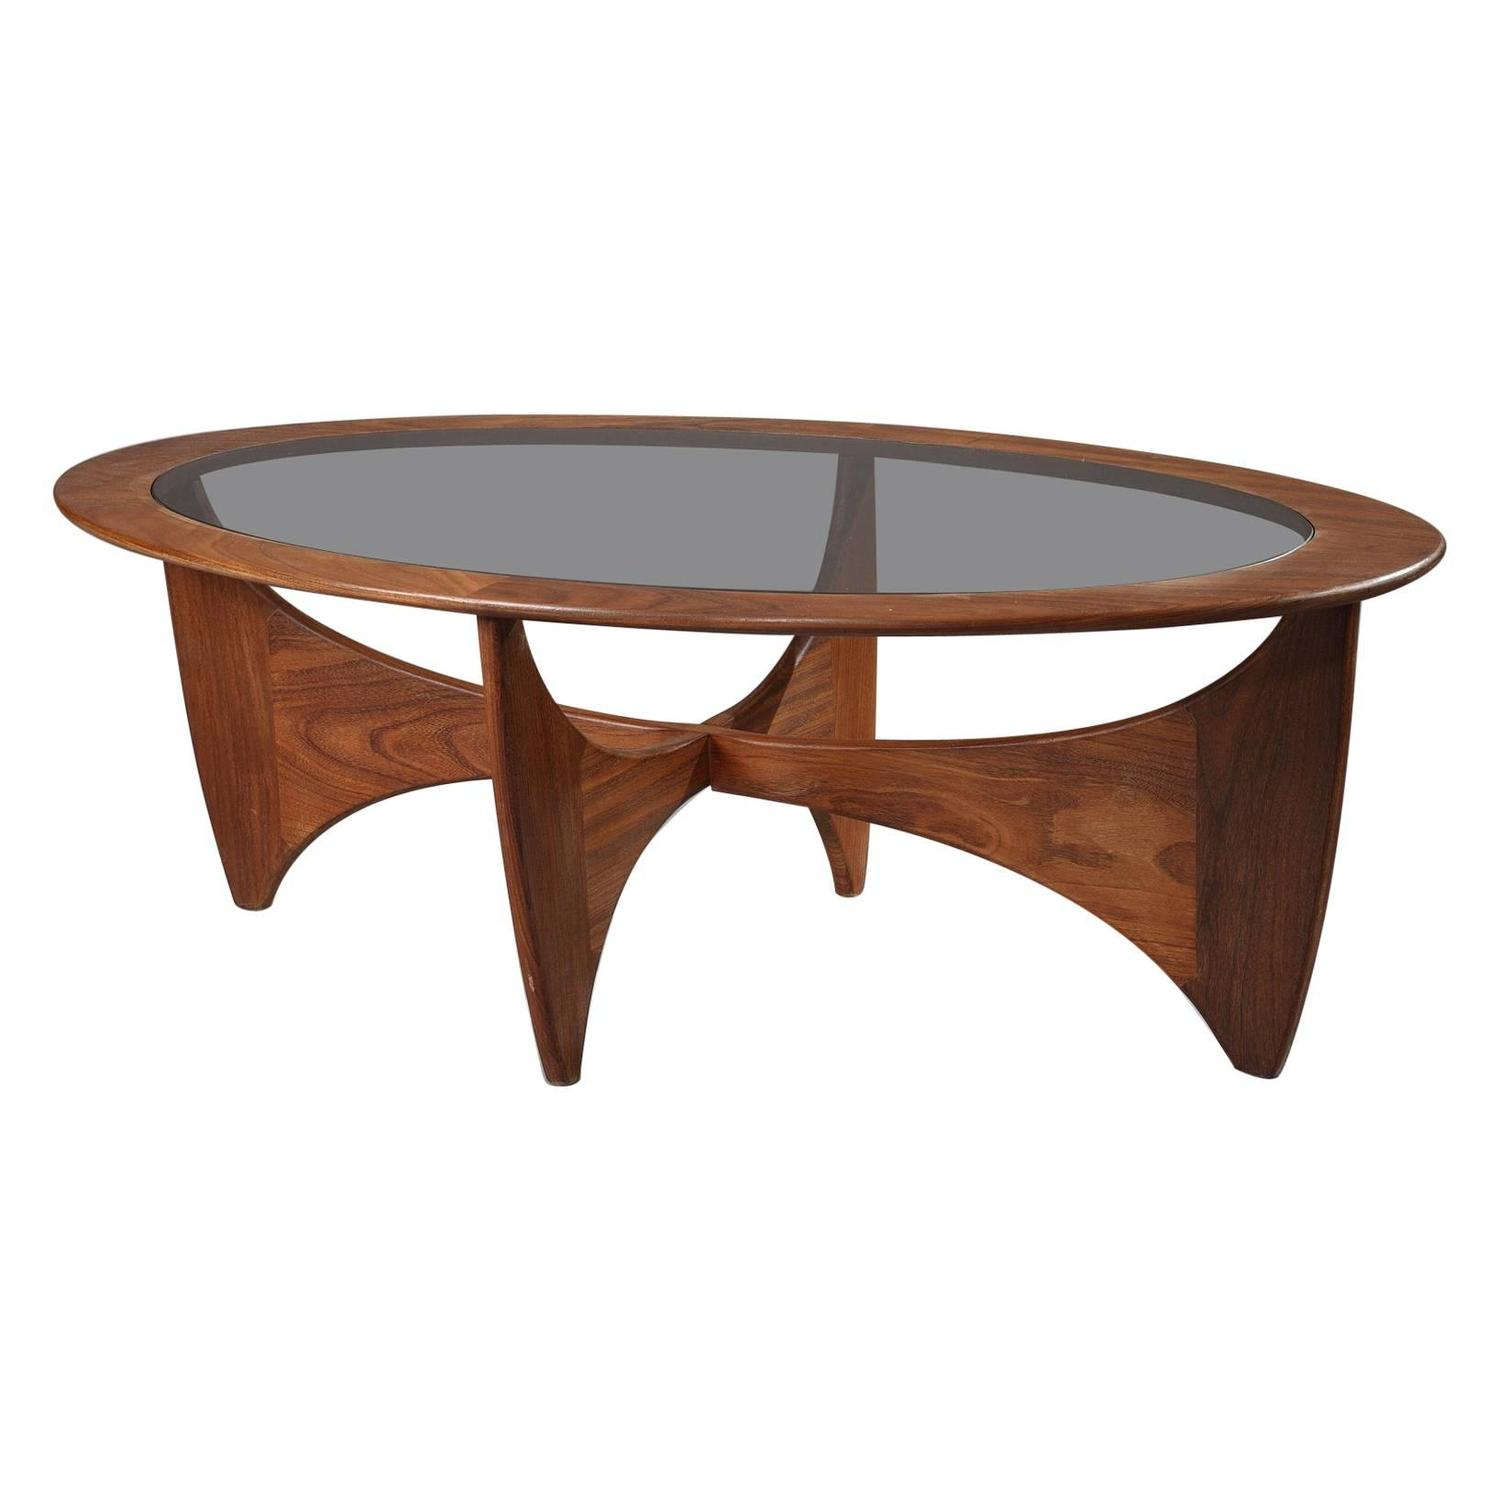 1960s Astro Coffee Table in Teak and Glass by Victor Wilkins For